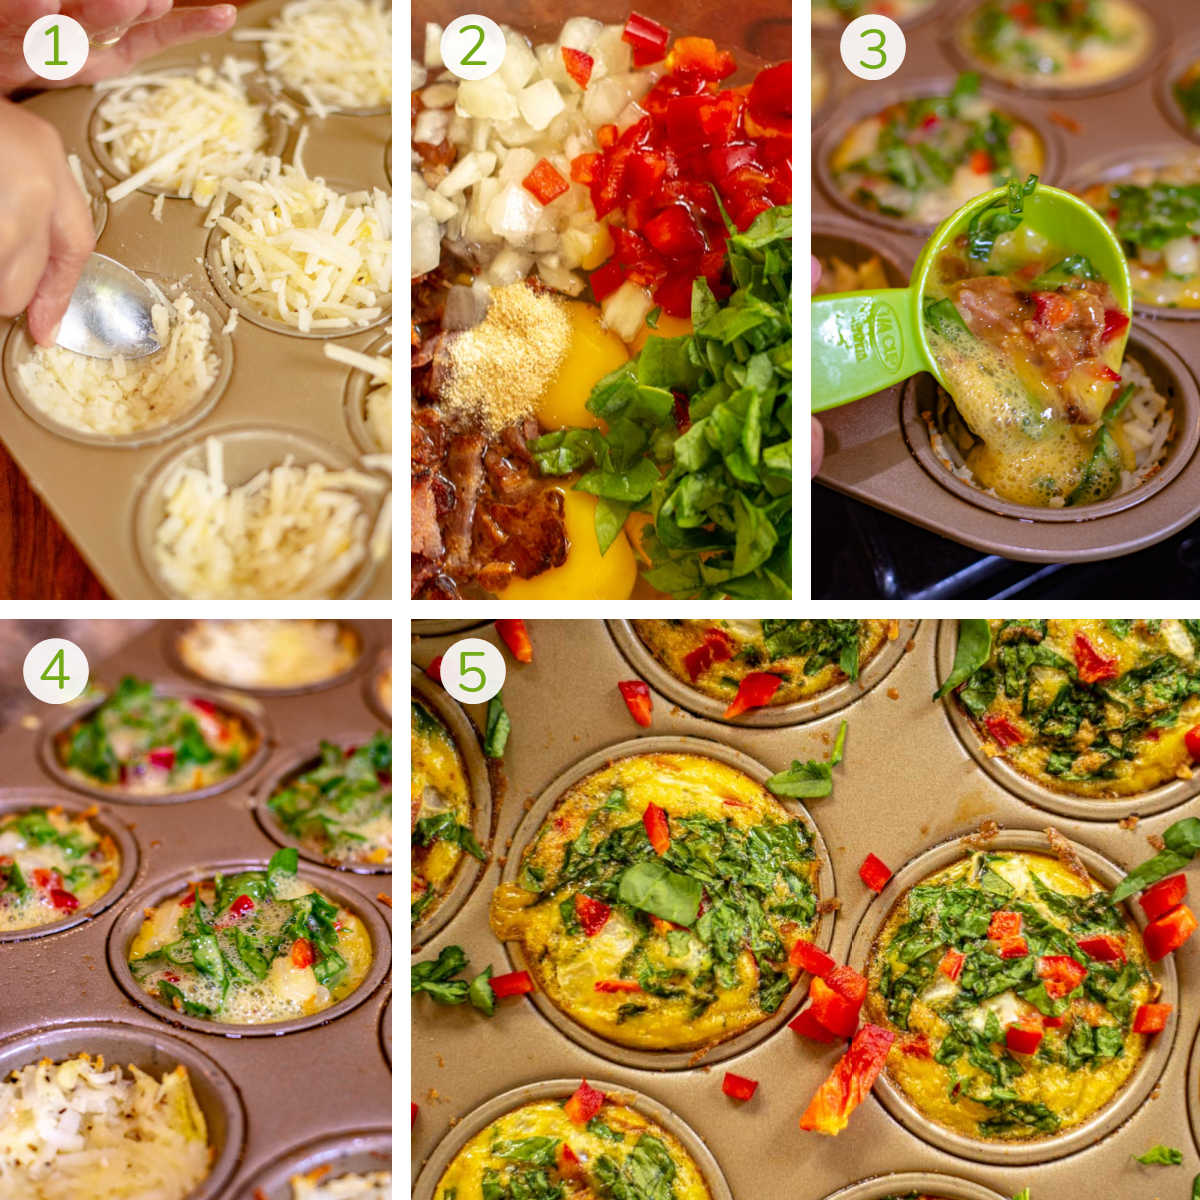 several photos showing making the hash brown nest and making the egg based filling.